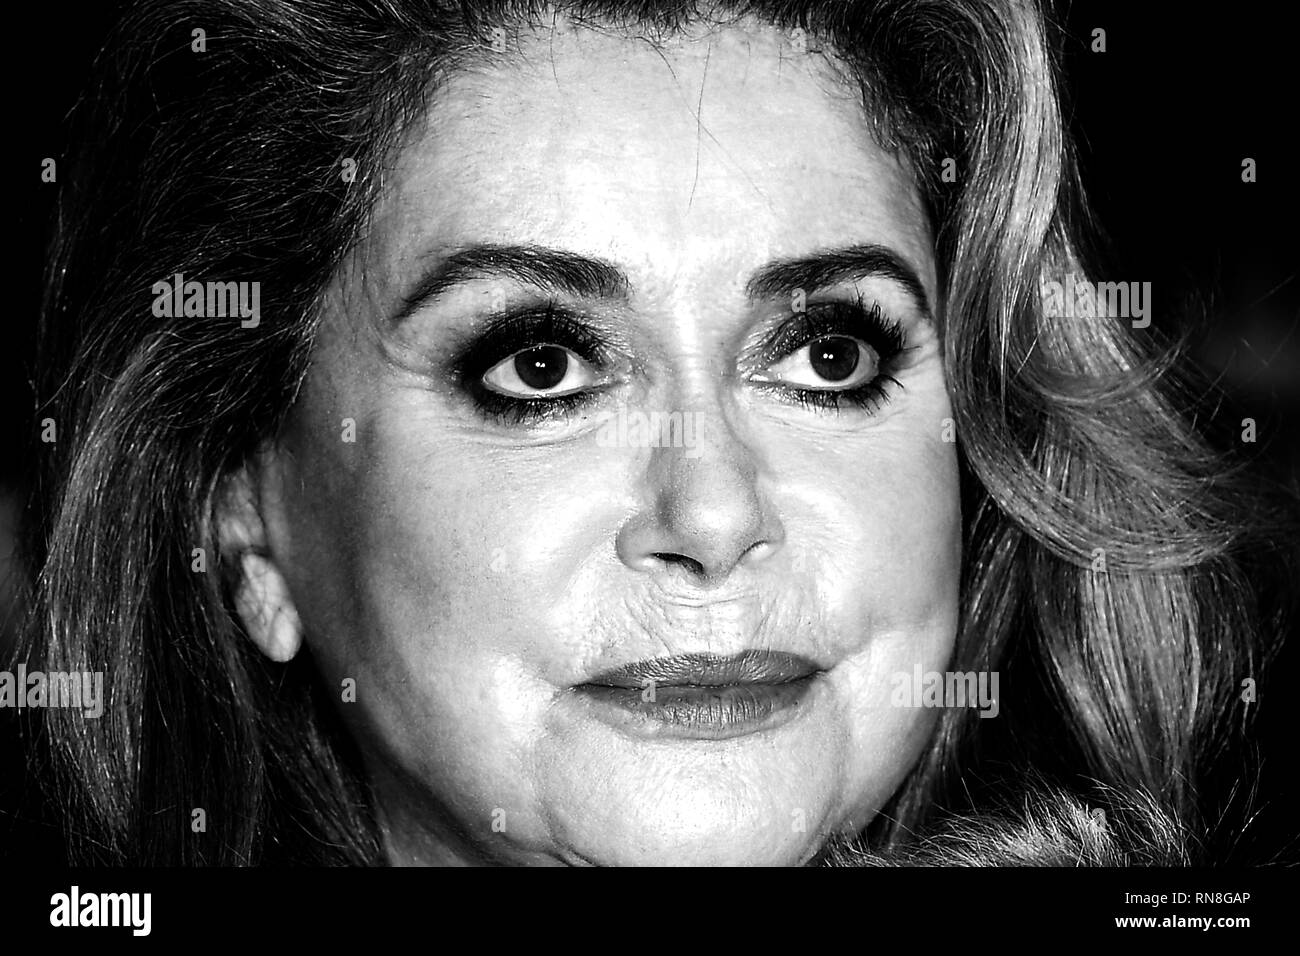 Catherine Deneuve attends the premiere for Farewell to the Night (L' adieu la nuit) during the 69th Berlin Film Festival. © Paul Treadway - Stock Image